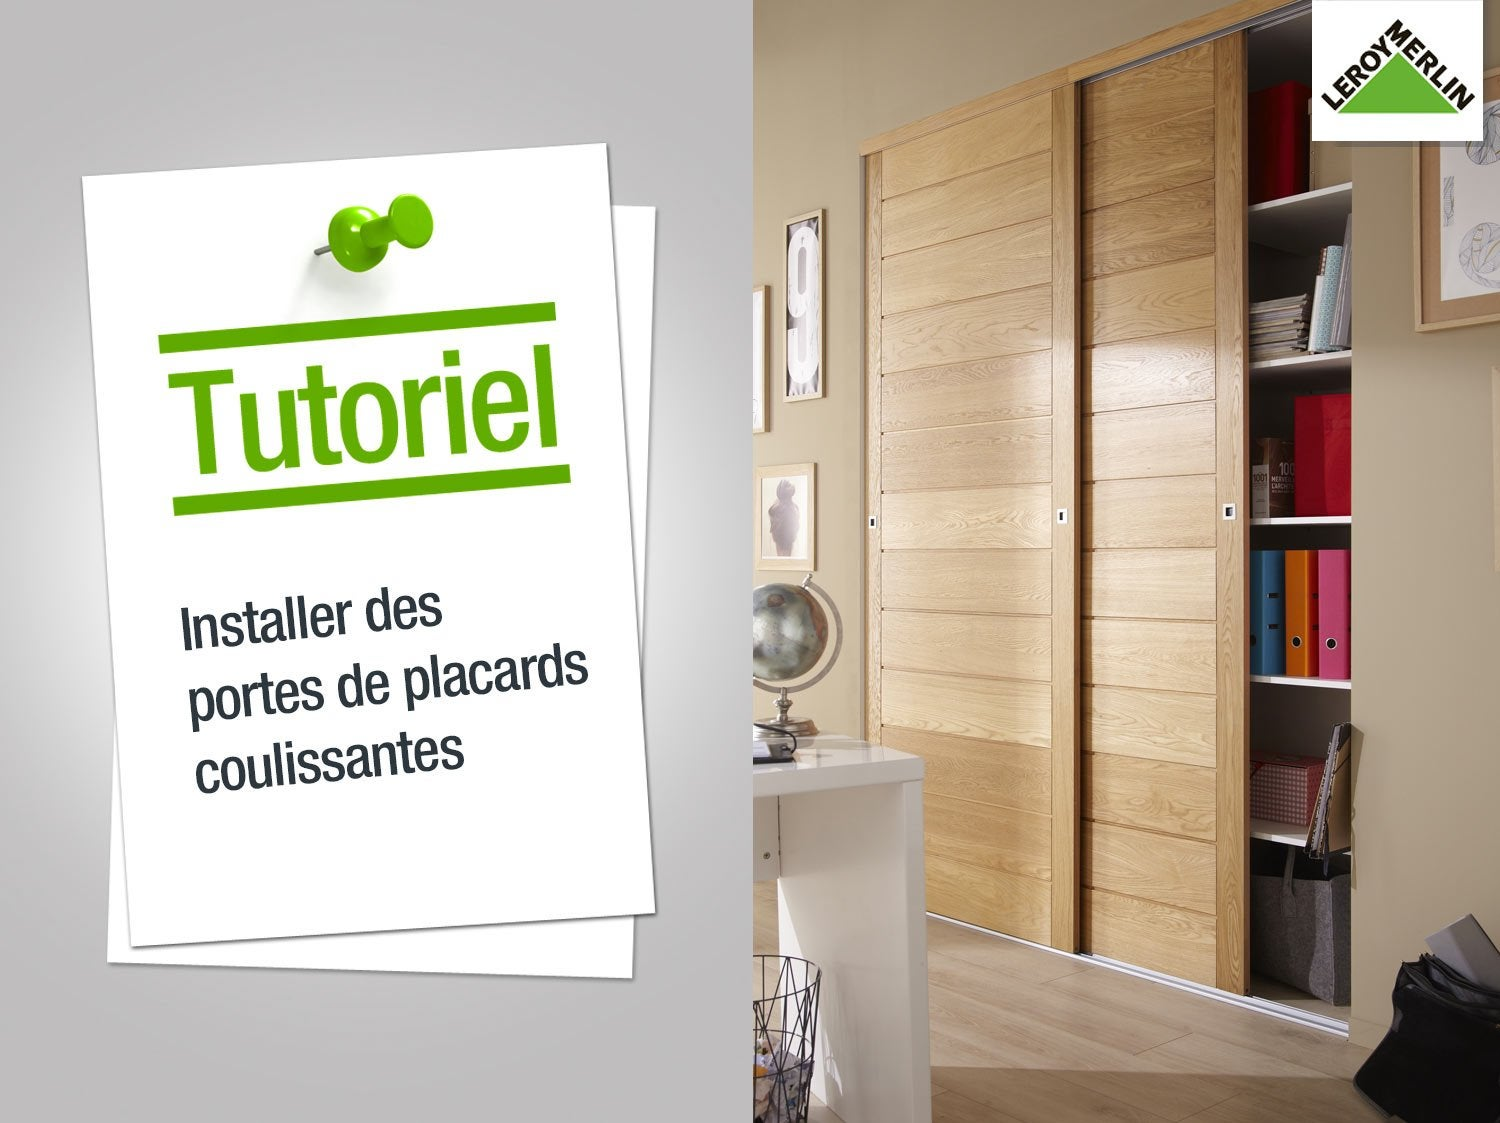 Comment Installer Des Portes De Placards Coulissantes Leroy Merlin - Installer portes placard coulissantes